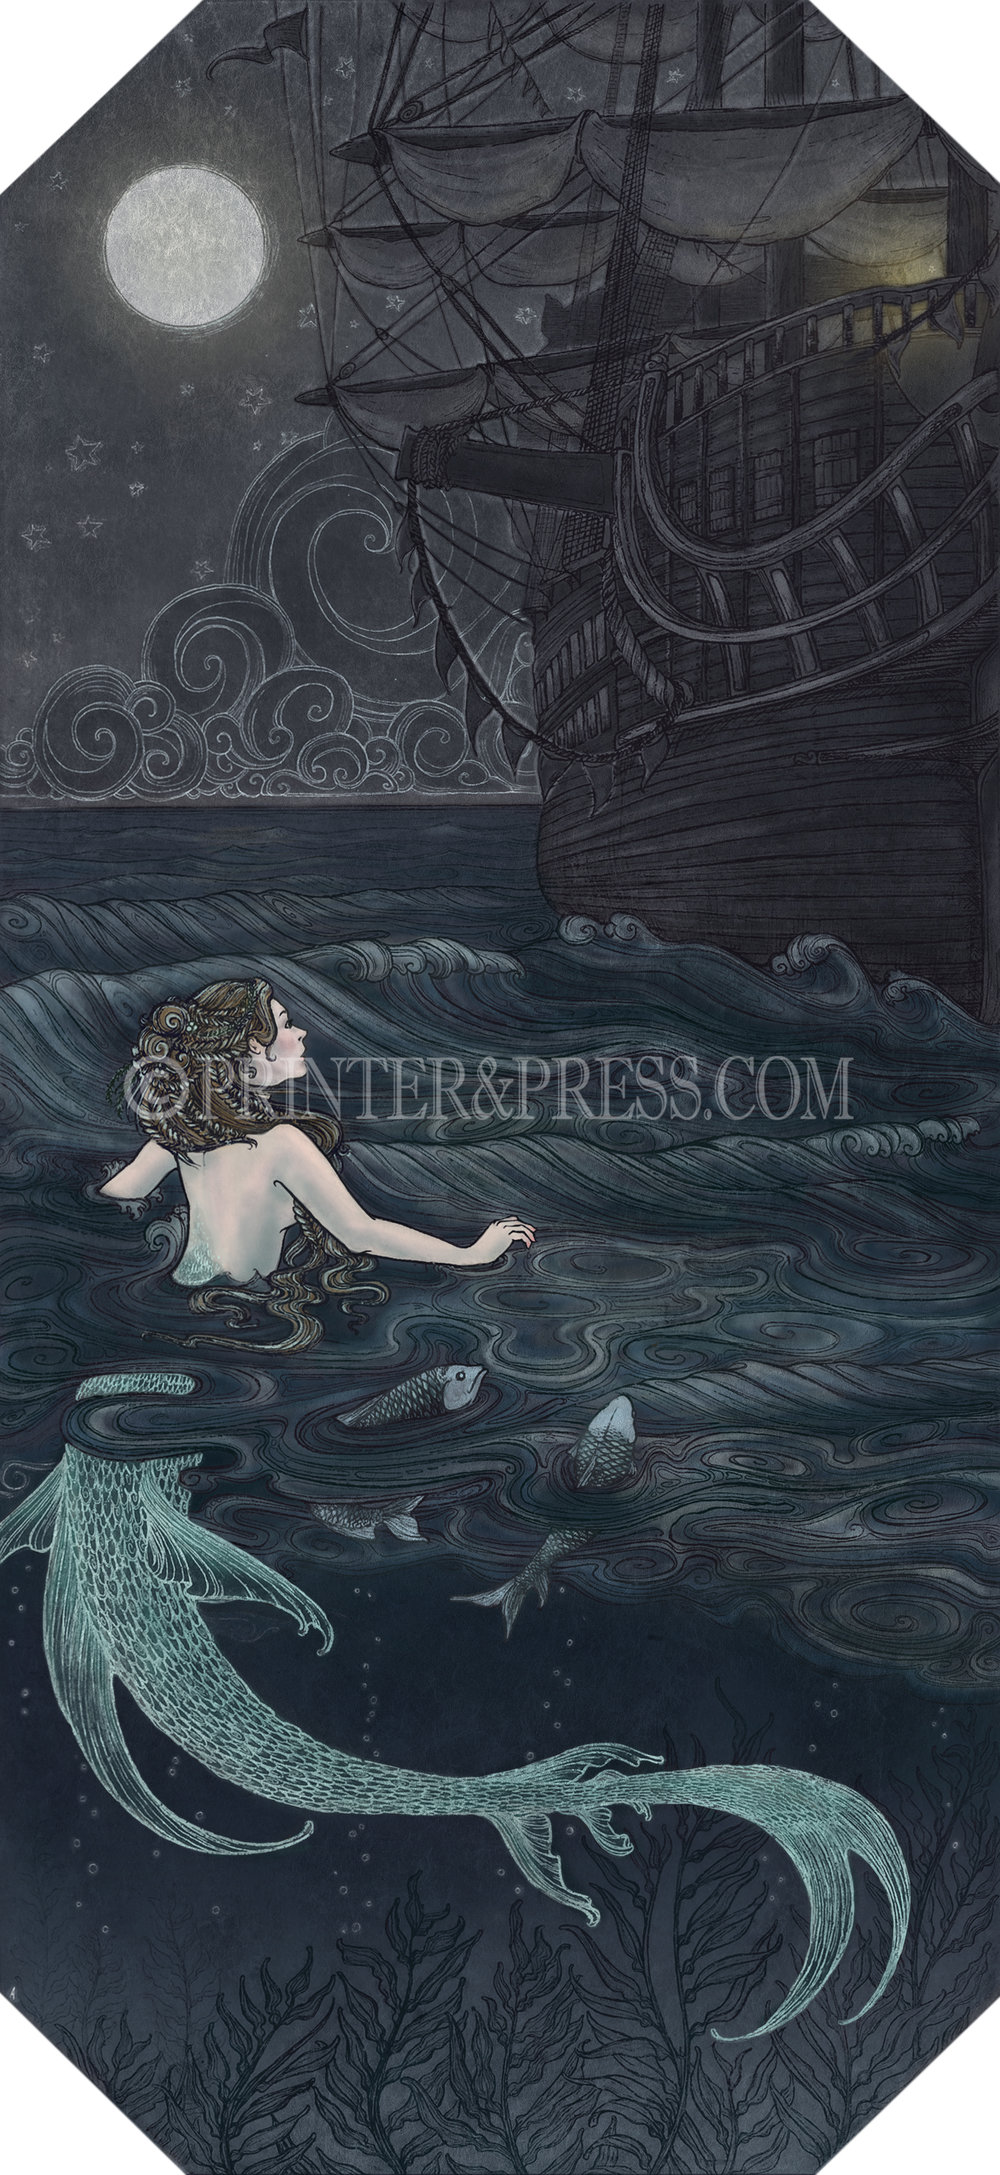 In the light of a full moon, a lovely mermaid floats on the sea's surface as she contemplates the approaching clipper ship, full of wonder and anticipation. Her iridescent green tail and milky white skin are in perfect contrast to the dark mystery of the ship.